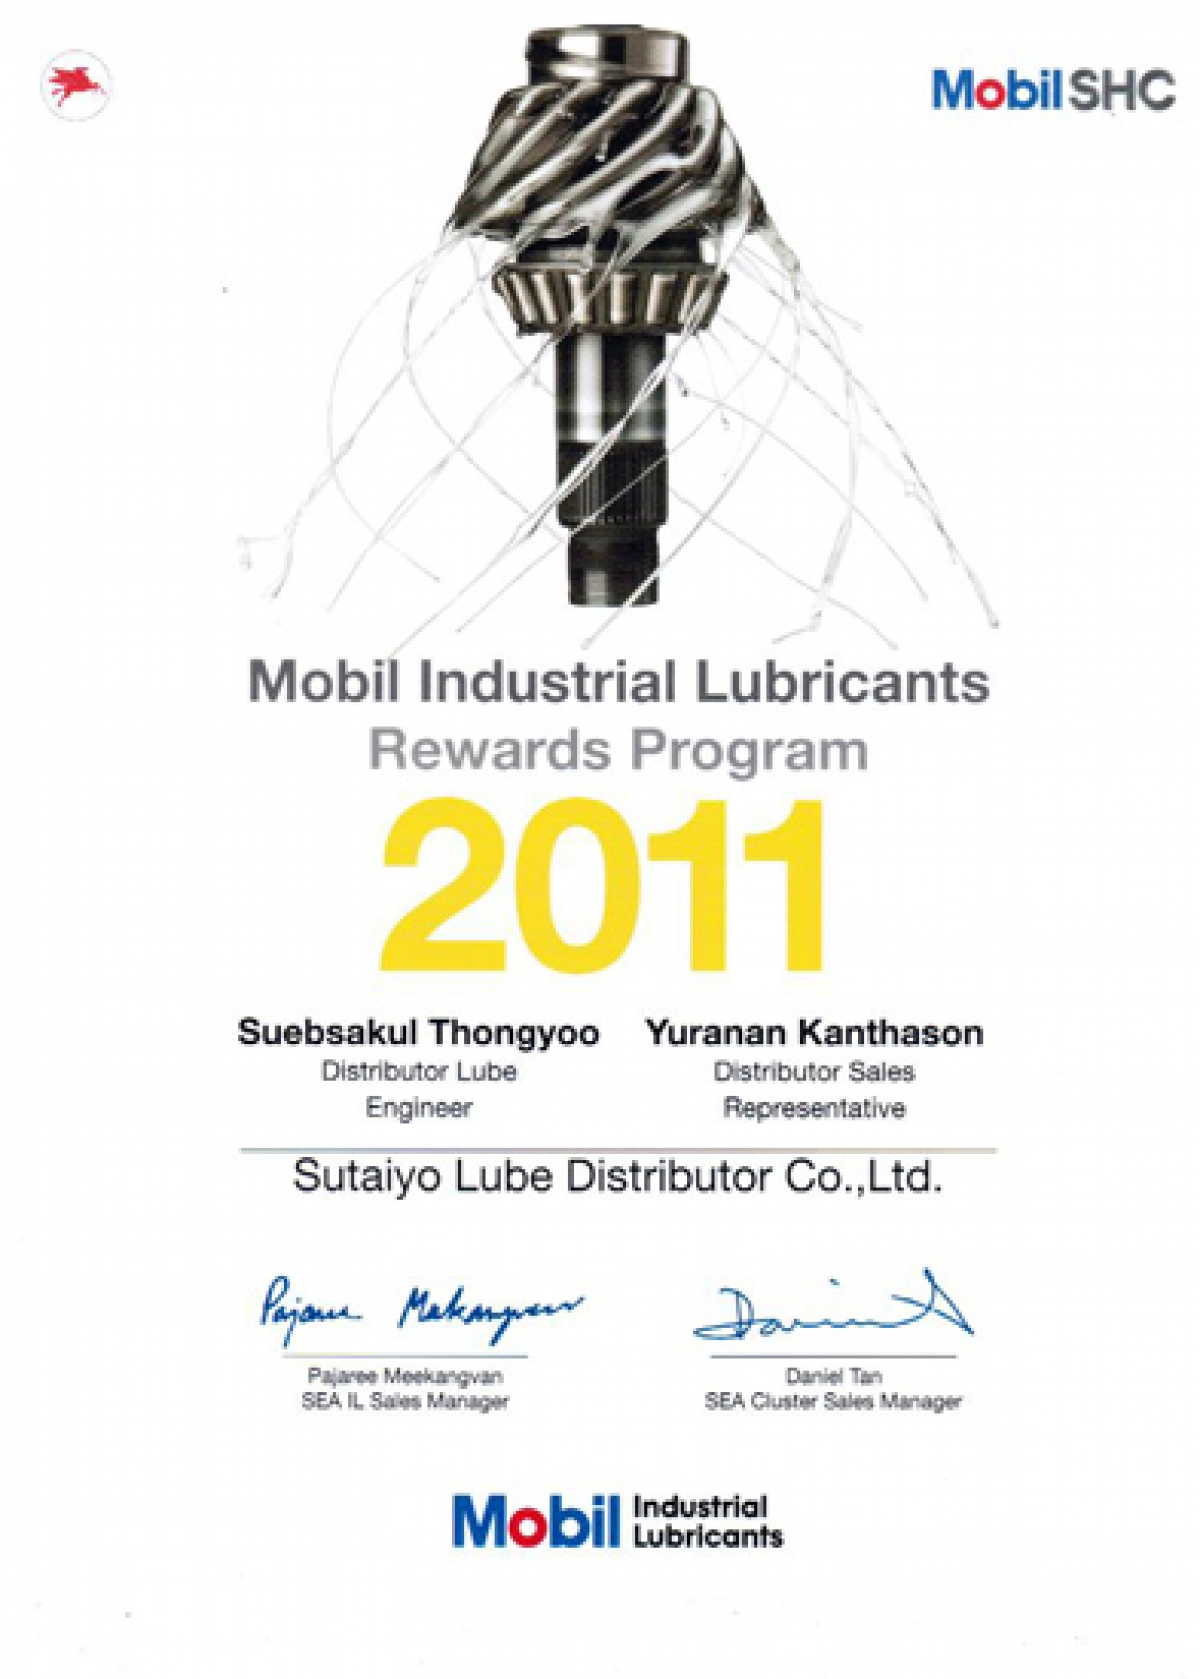 Mobil Industrial Lubricants Rewards Program